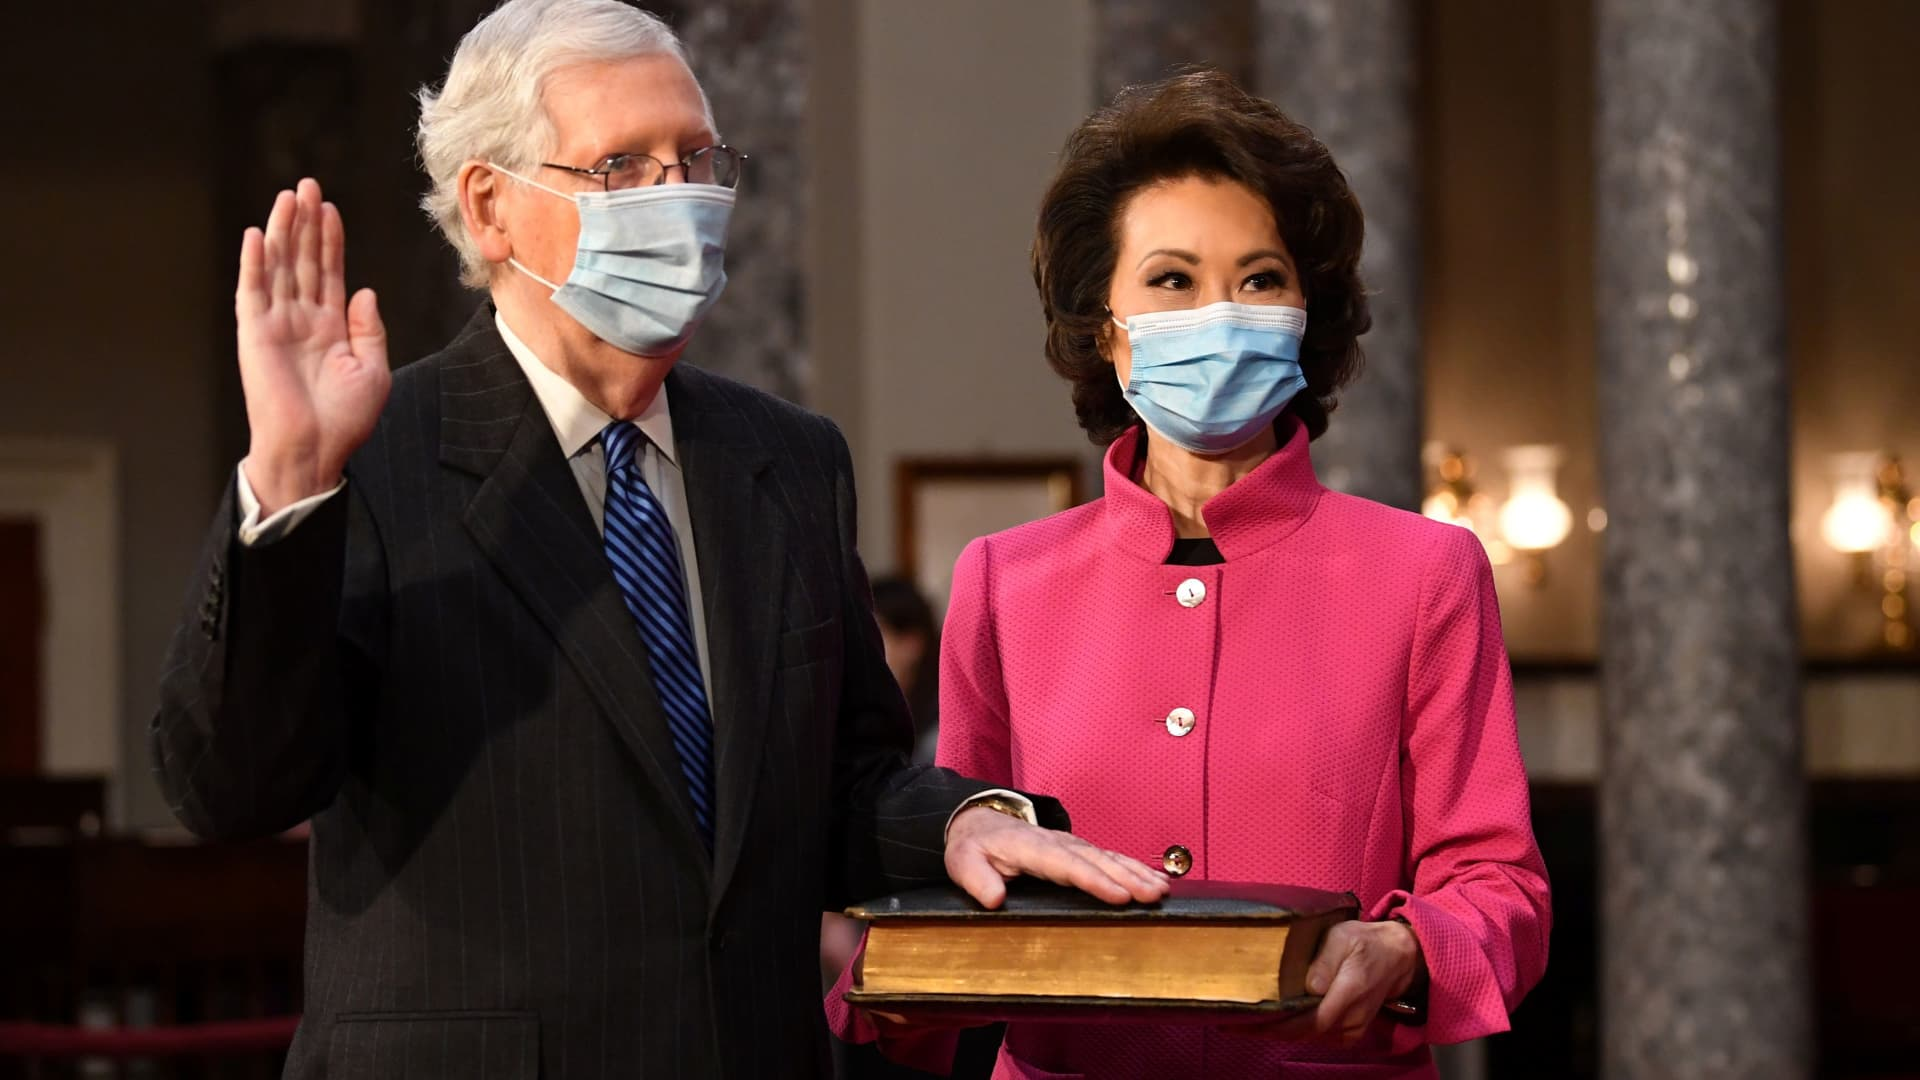 Senate Majority Leader Mitch McConnell (R-KY) participates in a swearing-in ceremony for the 117th Congress with Vice President Mike Pence, as his wife, Transportation Secretary Elaine Chao, holds the Bible in the Old Senate Chambers at the U.S. Capitol Building in Washington, DC, January 3, 2021.